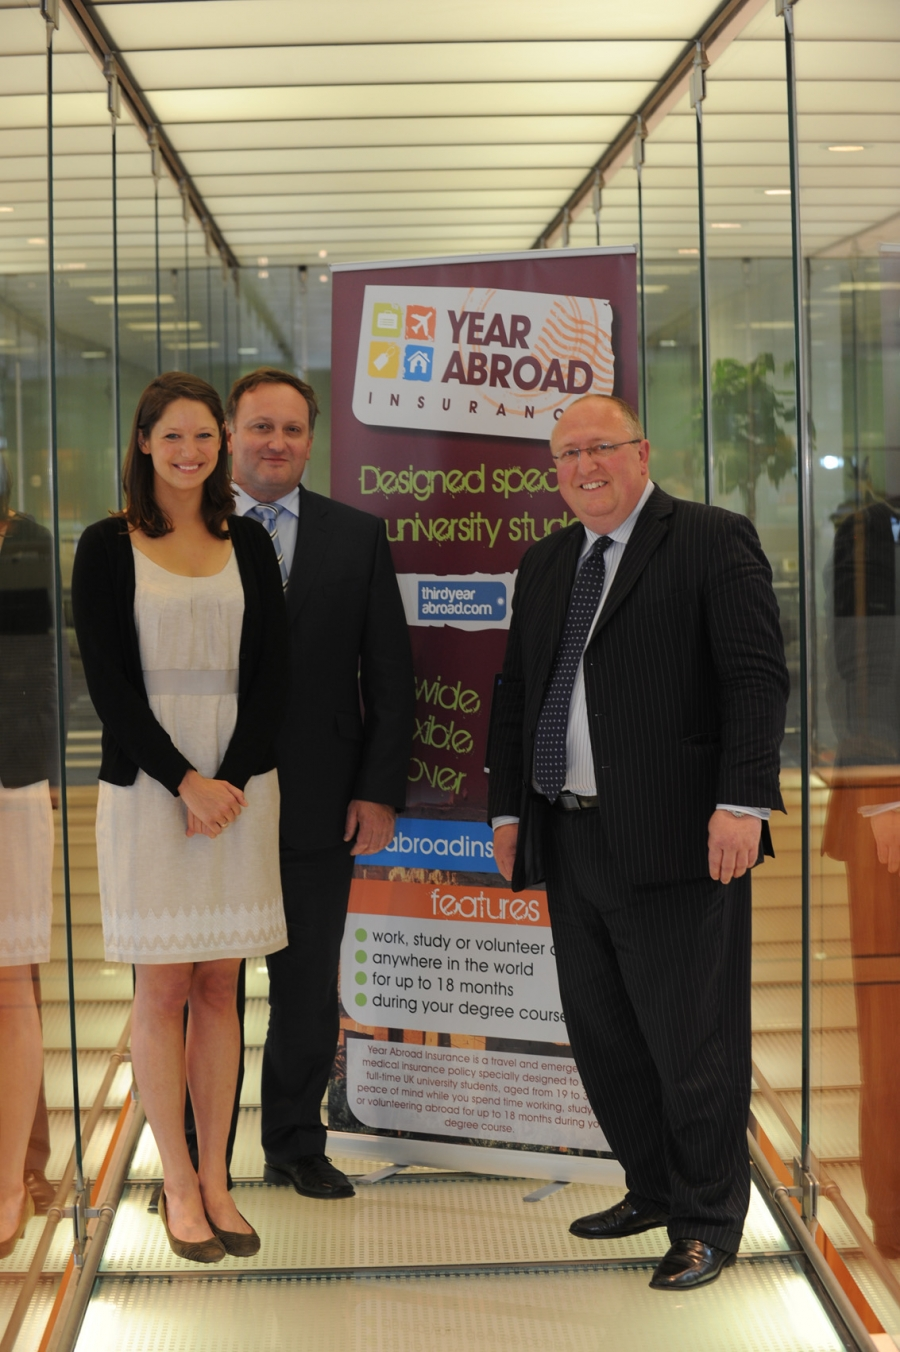 Press Release: Students and graduates join forces to develop the Year Abroad Insurance they needed